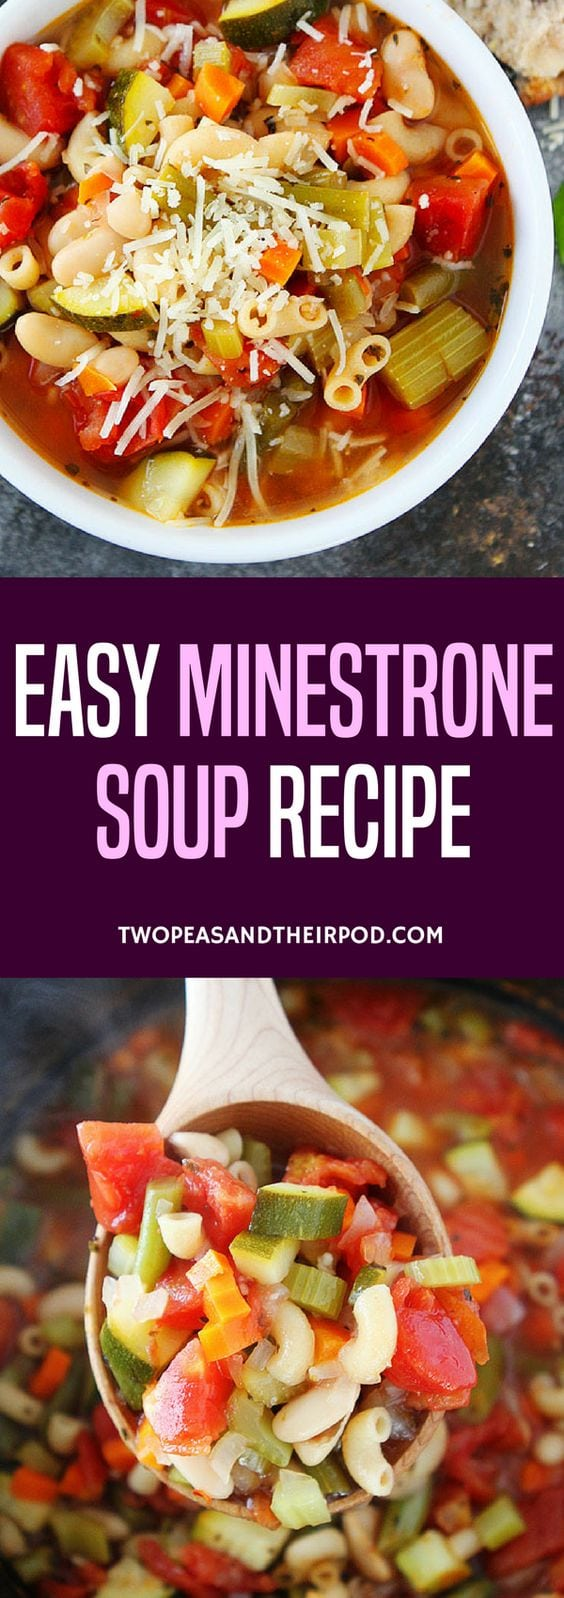 Easy Minestrone Soup-this classic Italian soup is a family favorite! Enjoy it for lunch or dinner! #vegetarian #soup #minestrone #easyrecipe #healthyrecipes